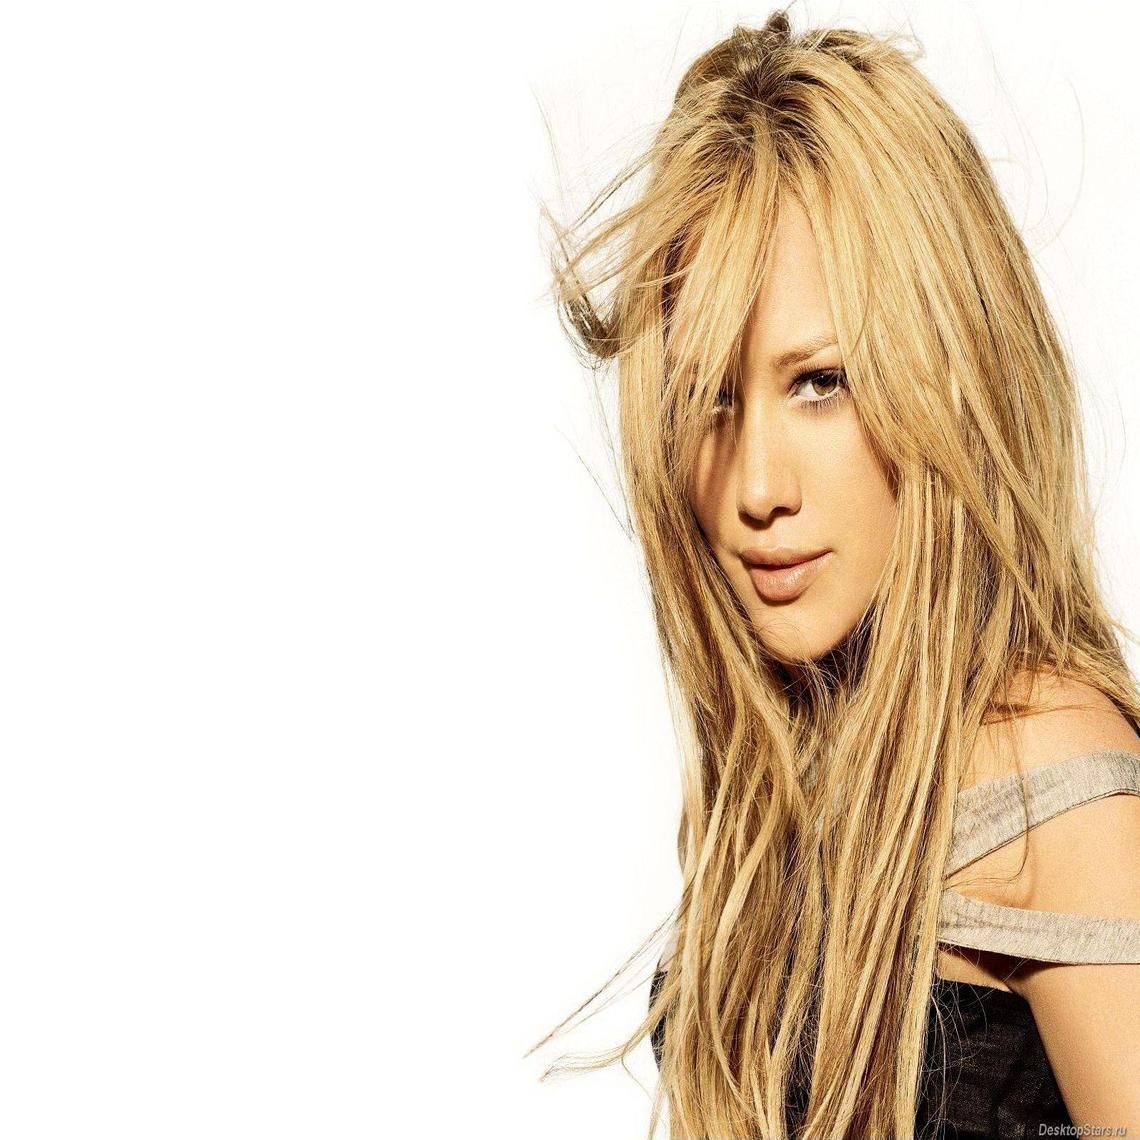 Hilary duff wallpaper pinterest hilary duff and rock